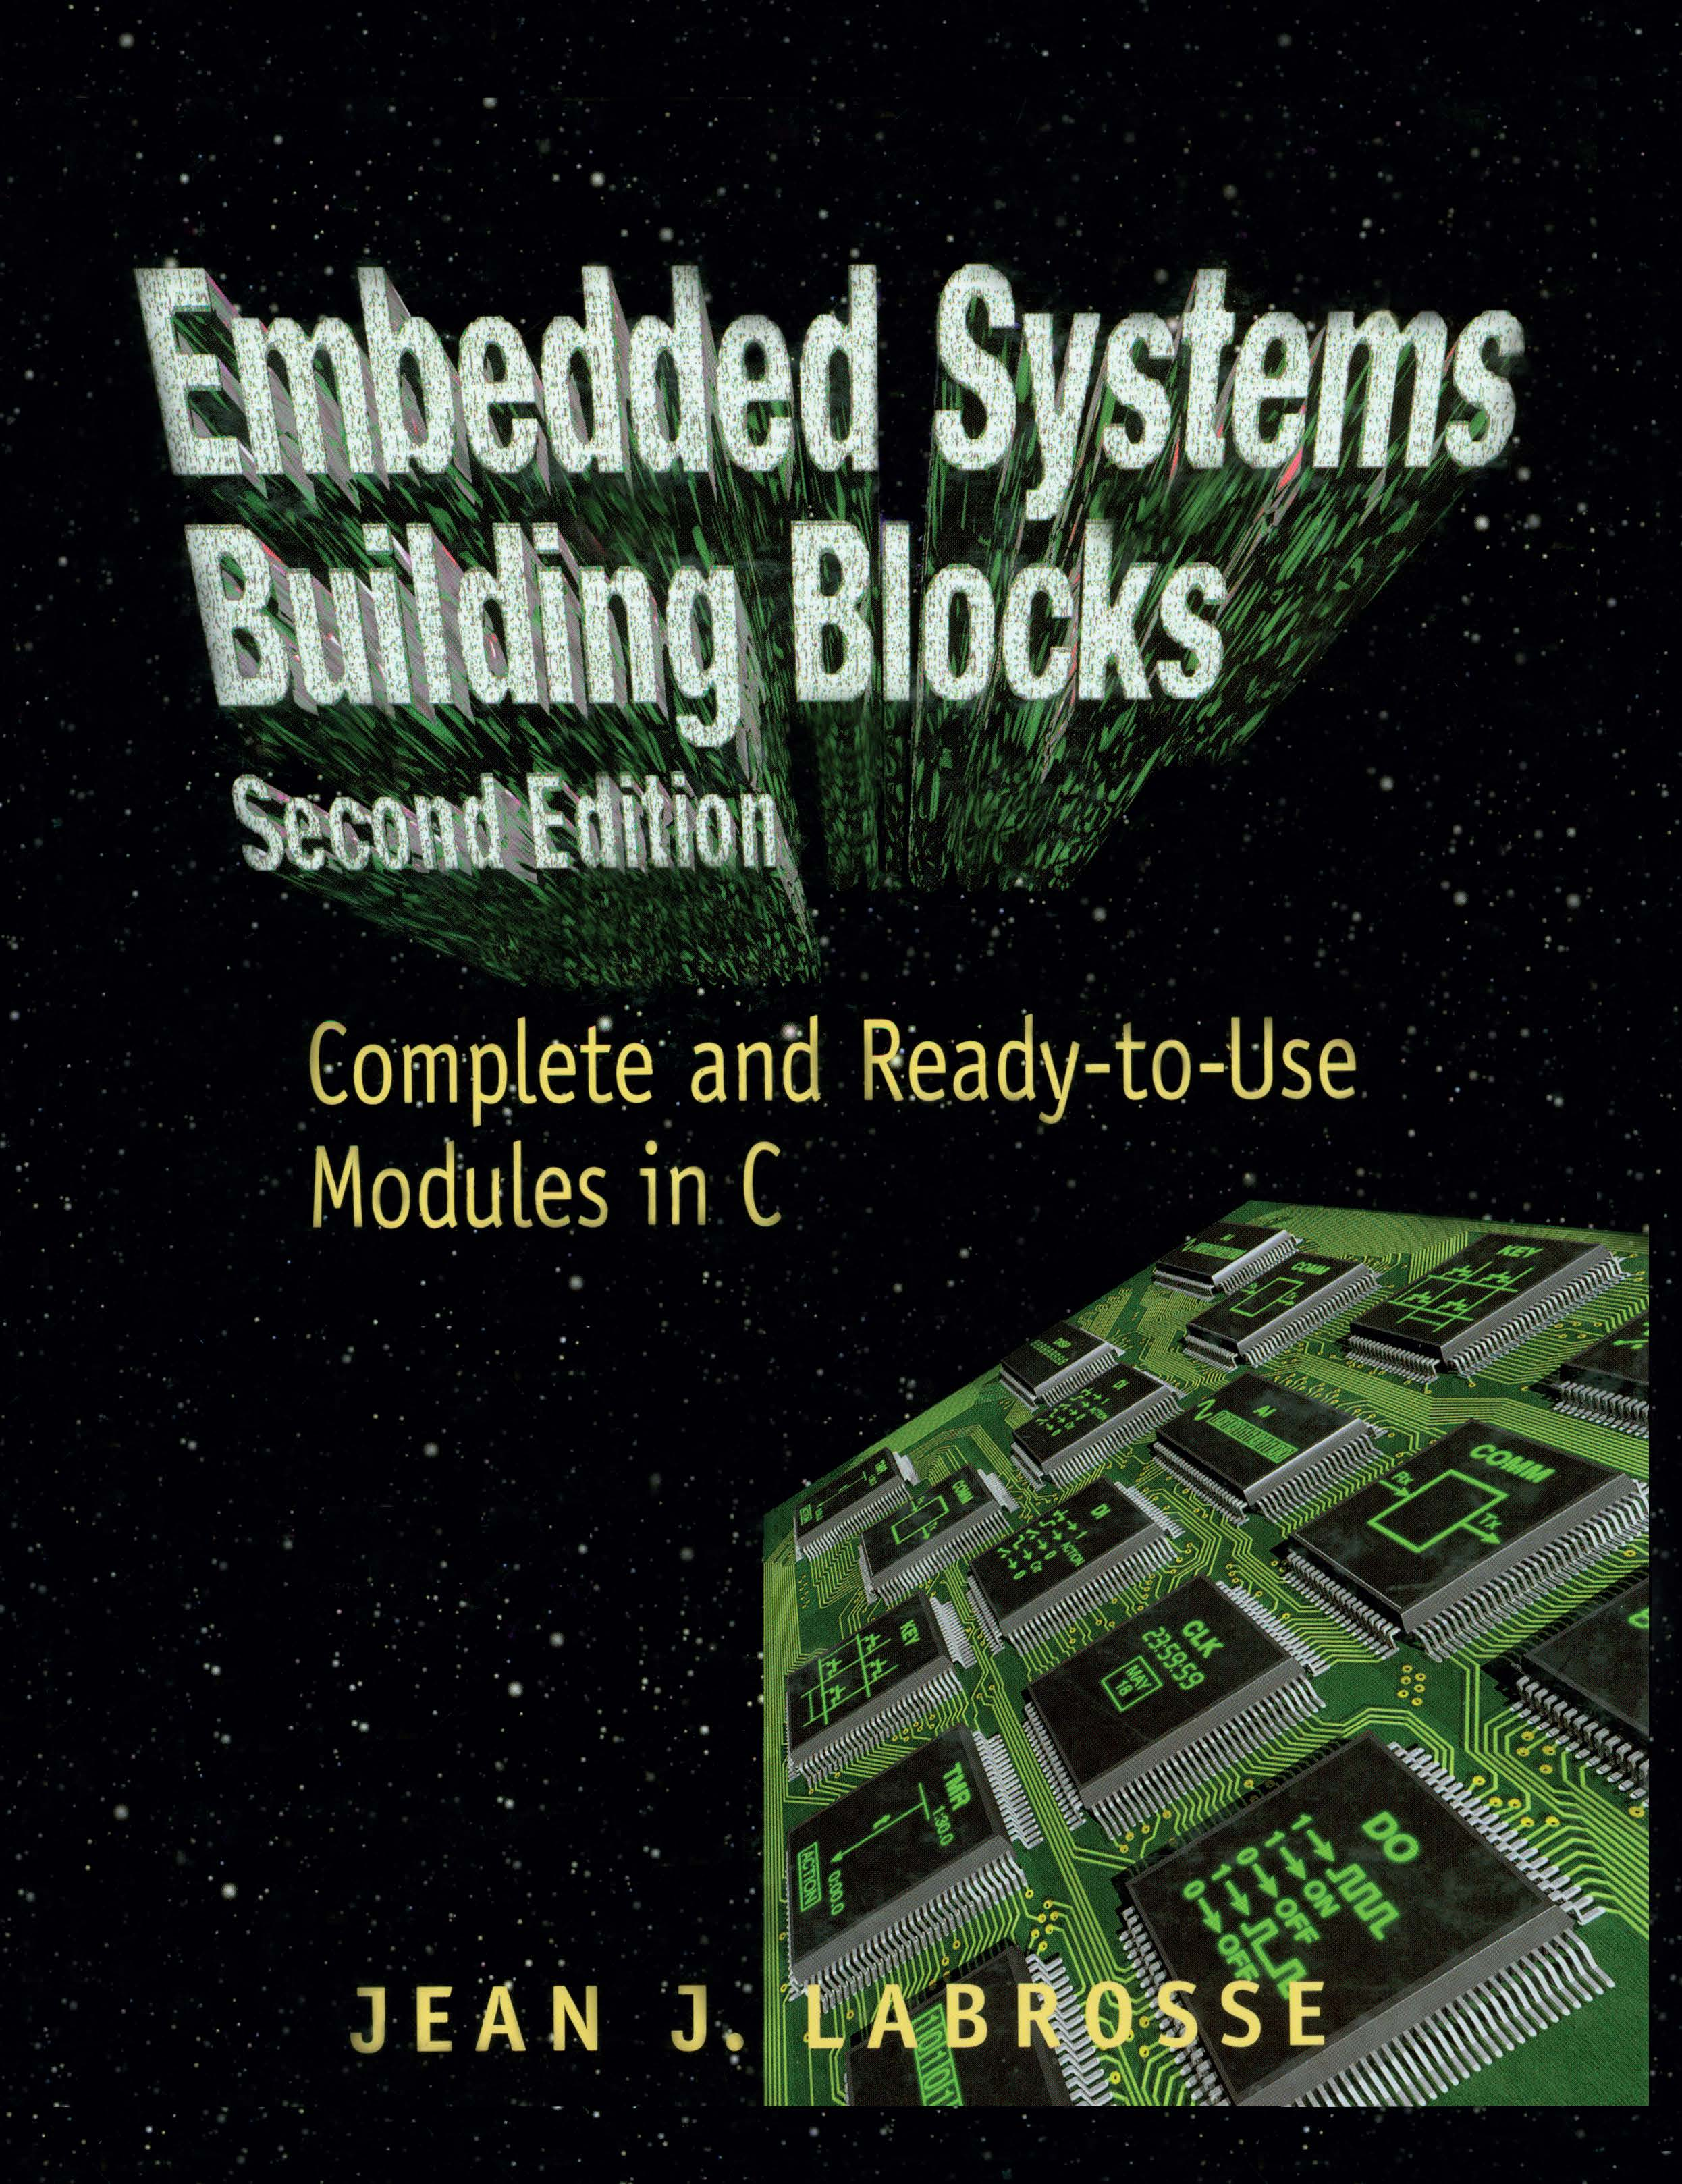 Embedded Systems Building Blocks: Complete and Ready-to-Use Modules in C, 2nd Edition (Hardback) book cover